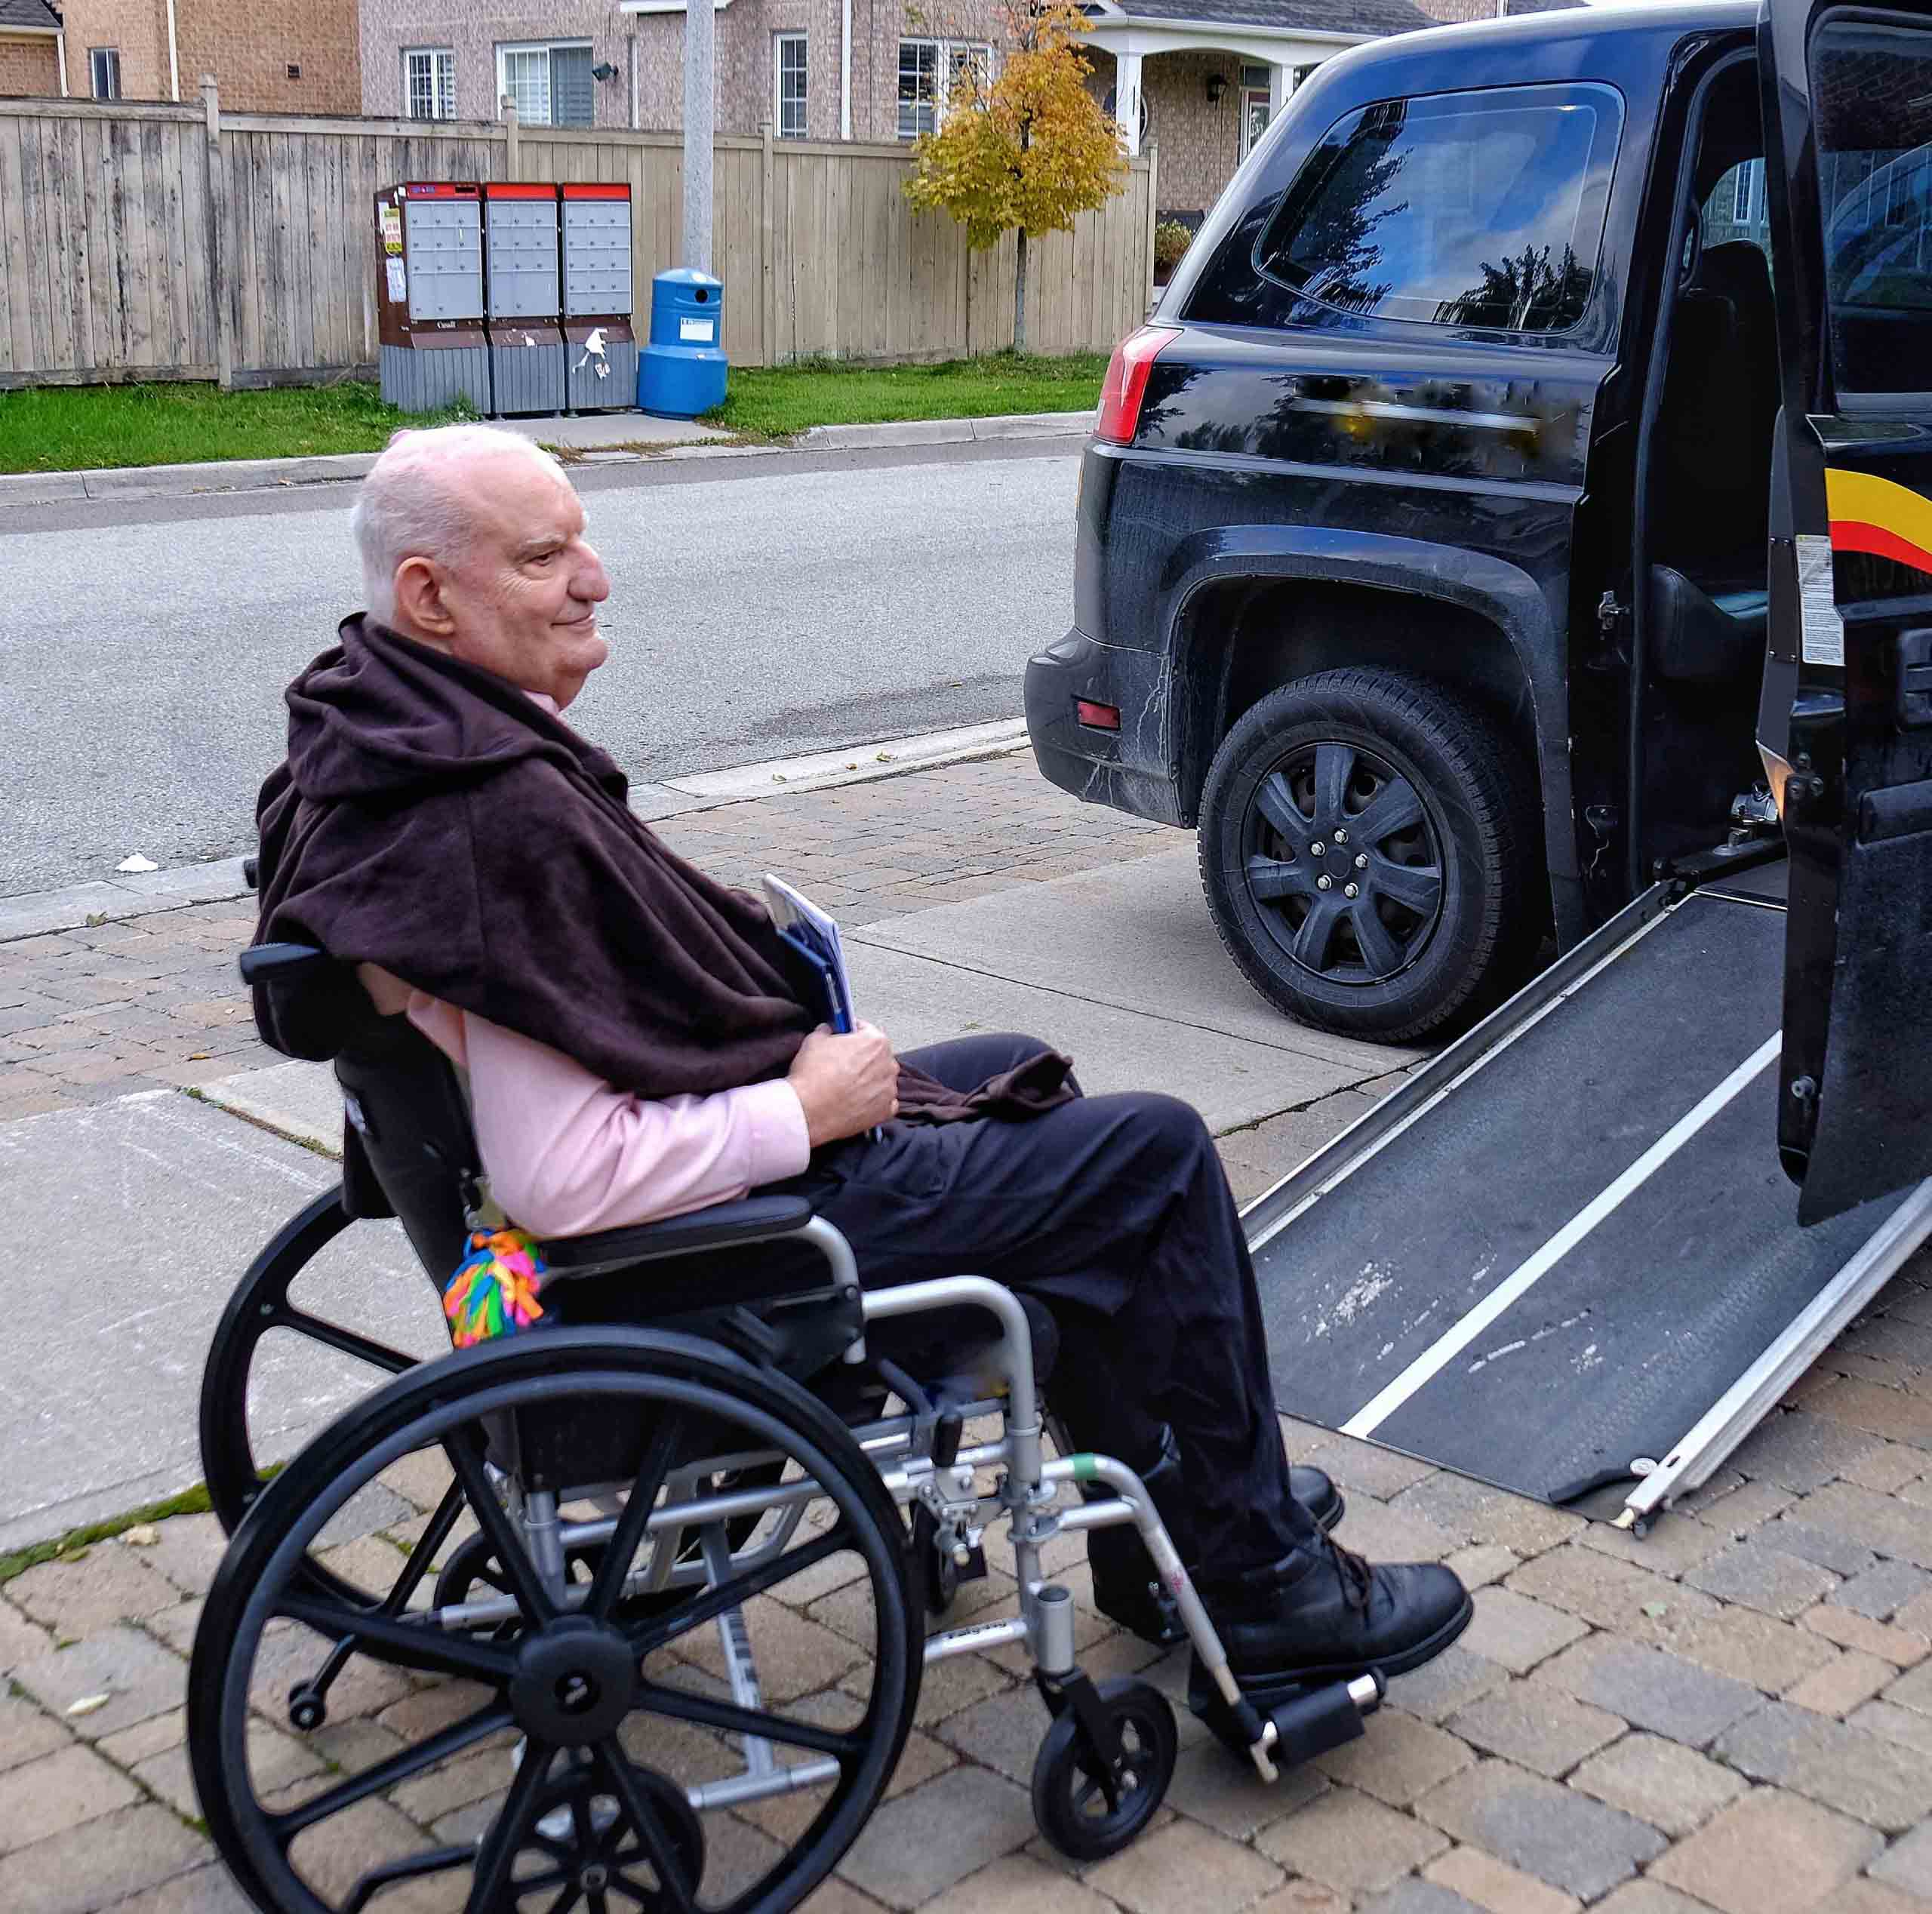 Man in wheelchair waiting to go up ramp into wheelchair cab